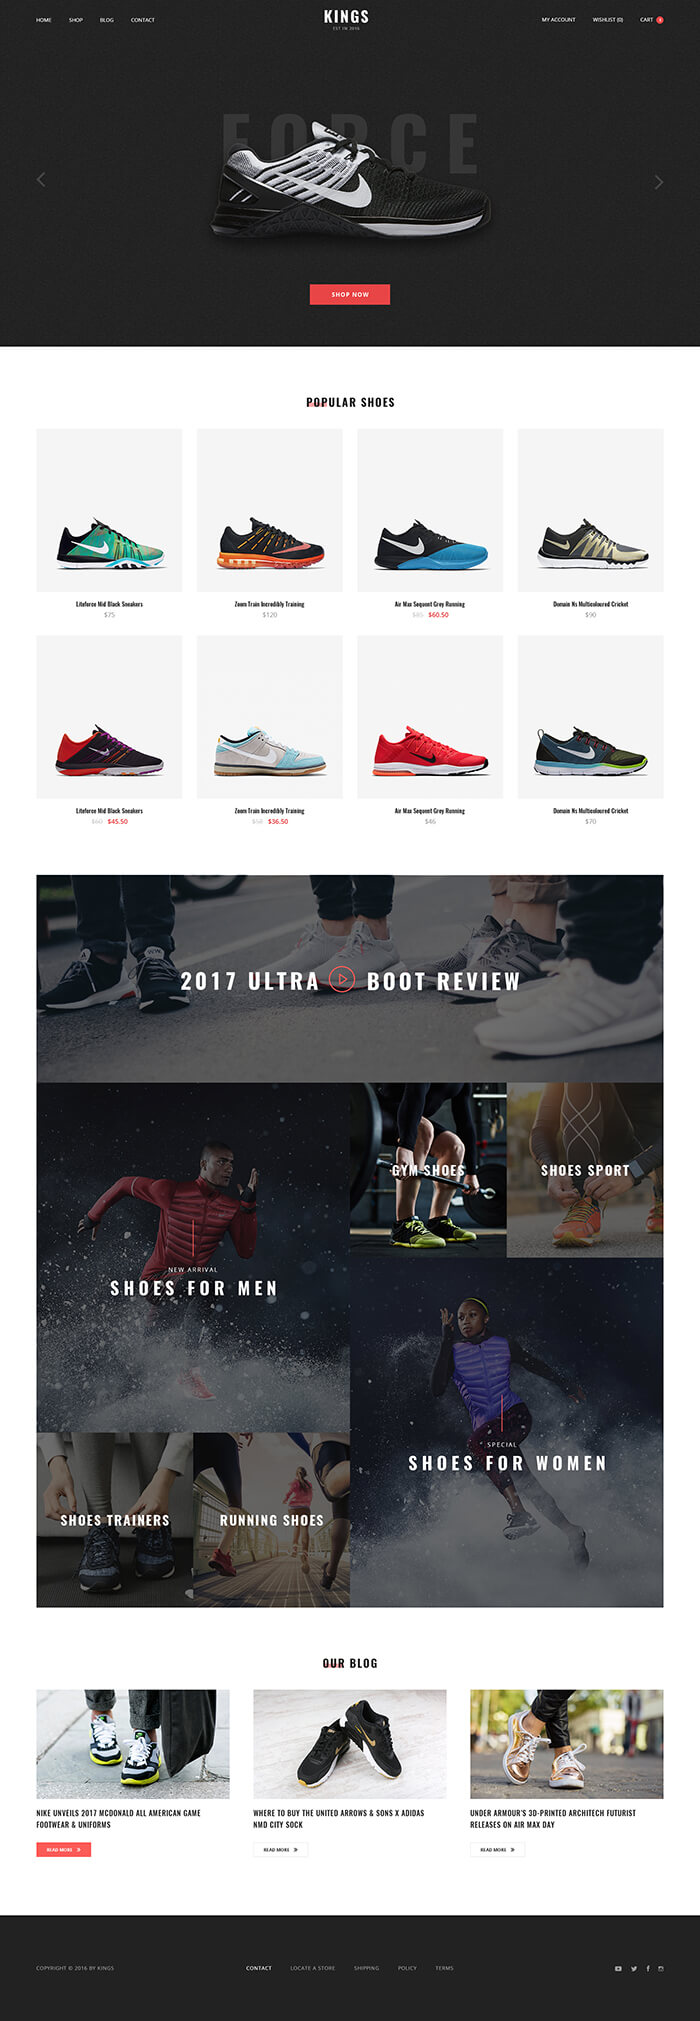 5 Best SHOPIFY Premium Themes Collection for RETAIL Store 2017 -KINGS - Multi Store Responsive Shopify Theme